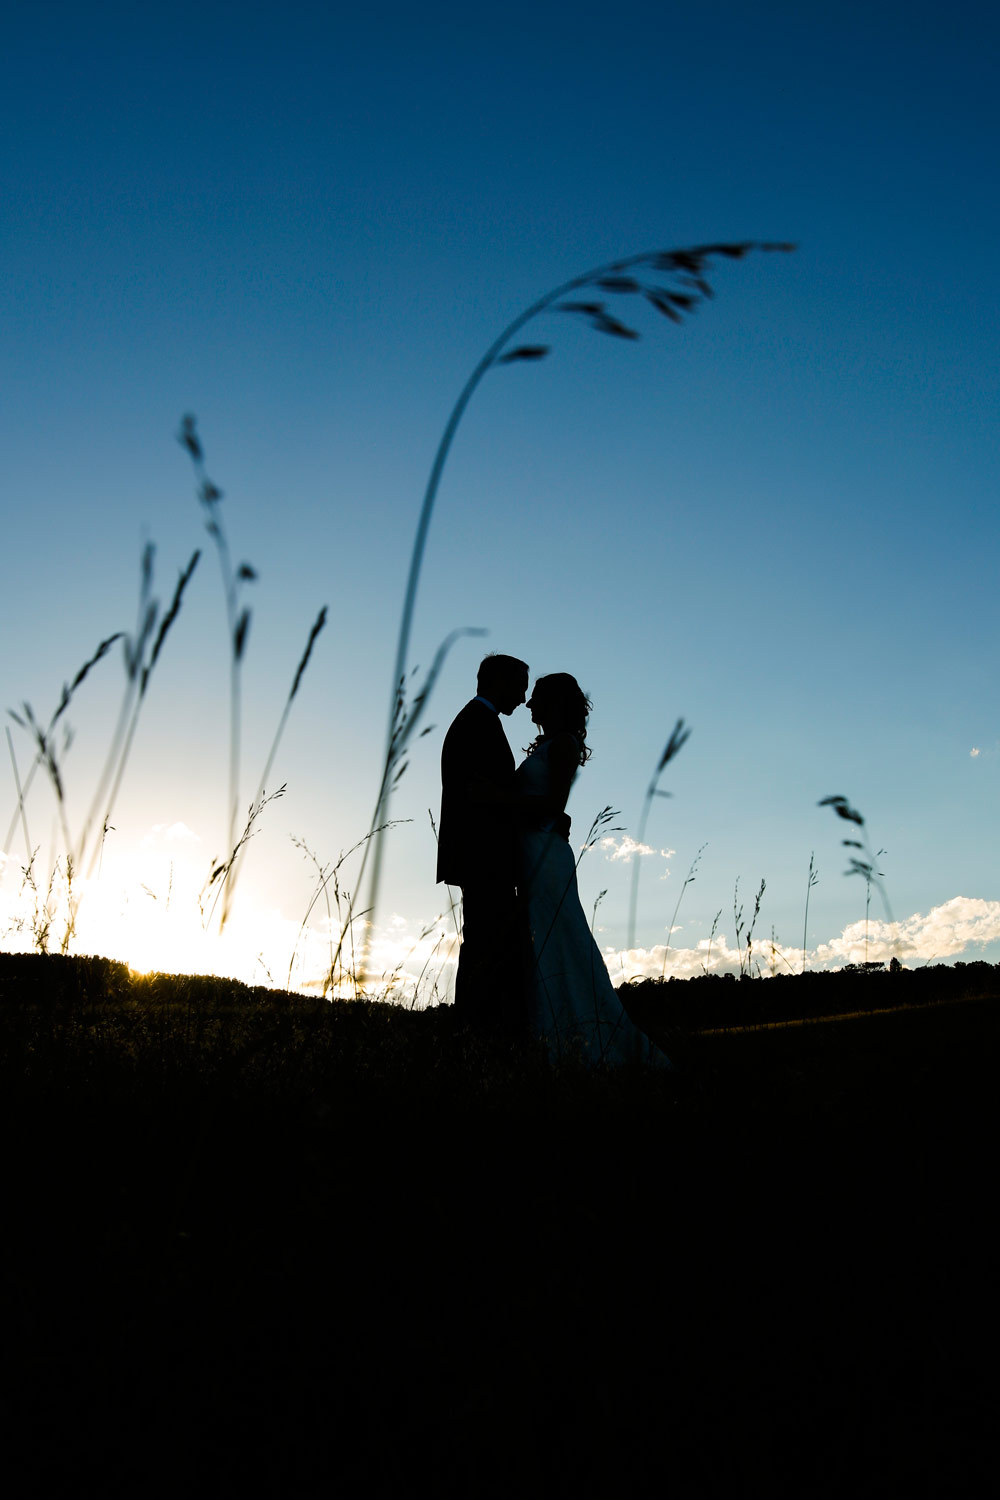 spruce-mountain-ranch-wedding-denver-ruthie-hauge-photography-larkspur-field.jpg